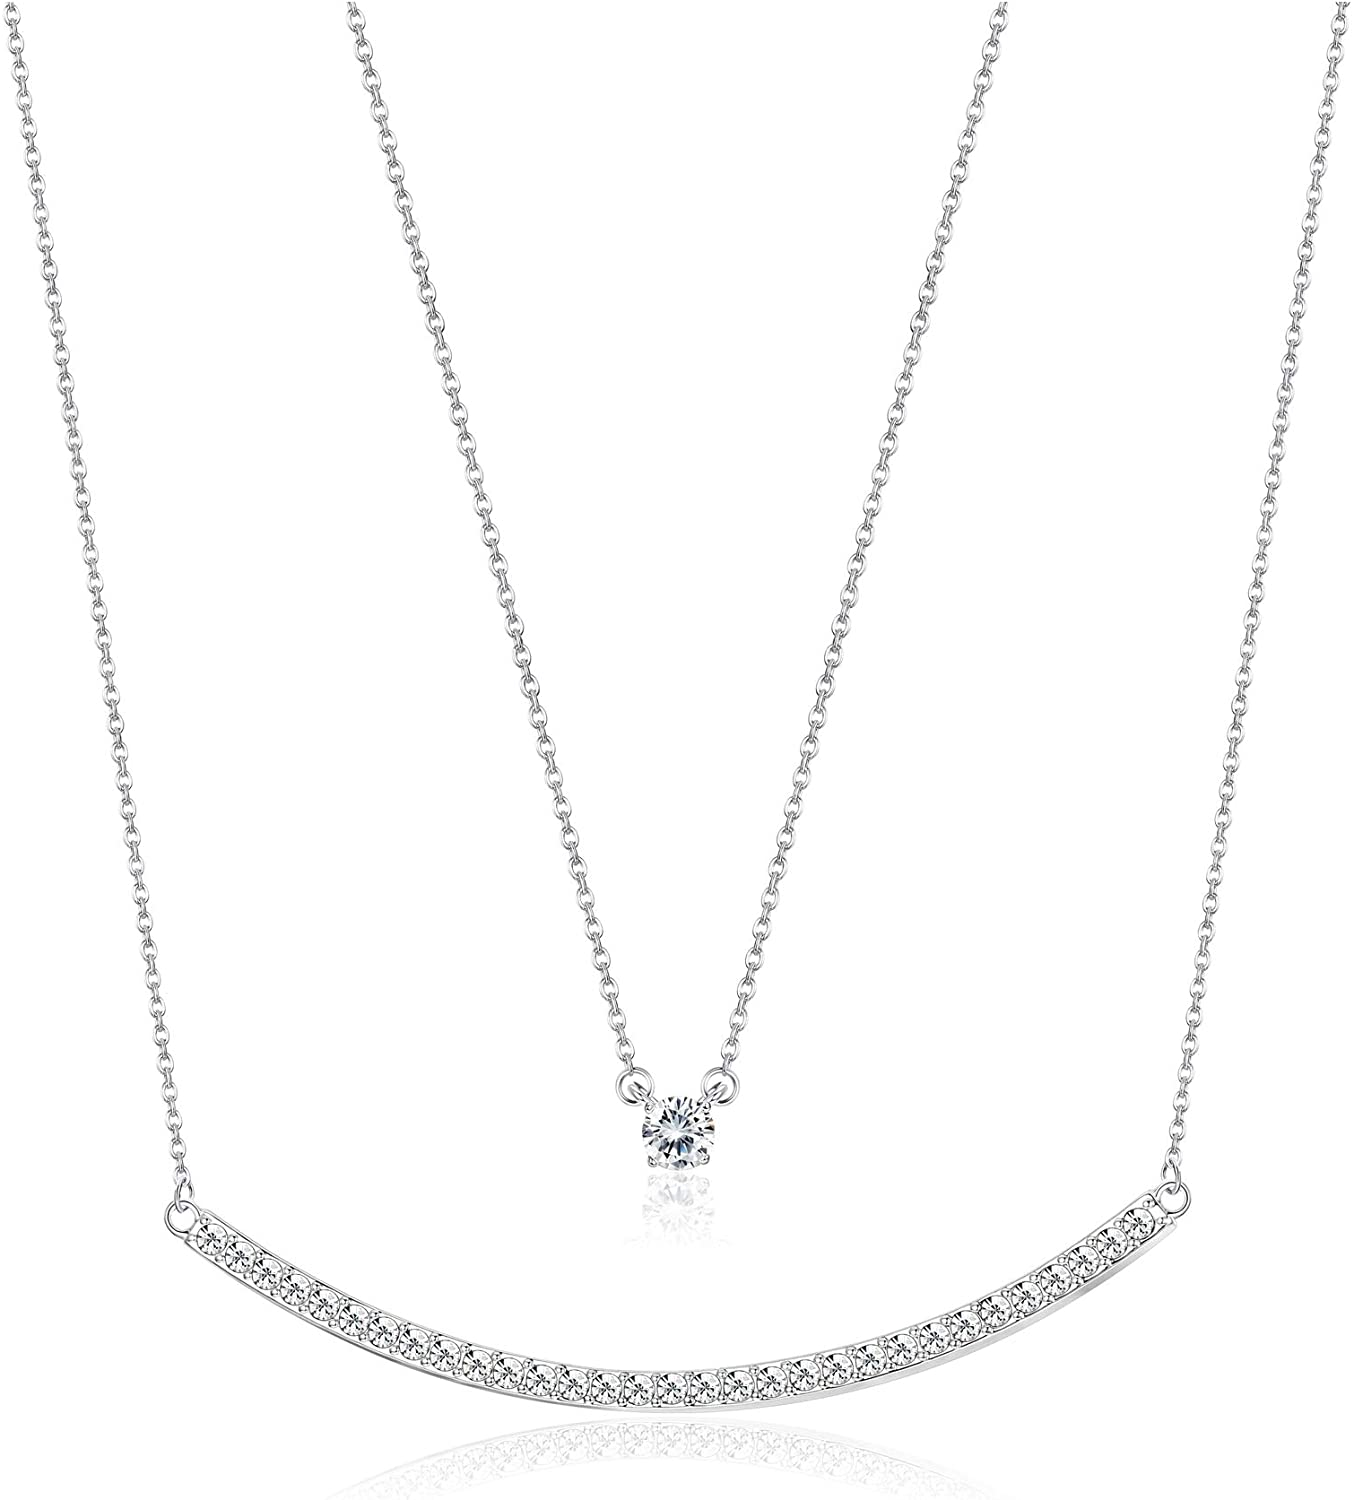 KesaPlan Swarovski Crystal Layered Necklace Double Chain Crystal Necklace for Women, Charm White Gold Necklace Jewelry Gift for Women